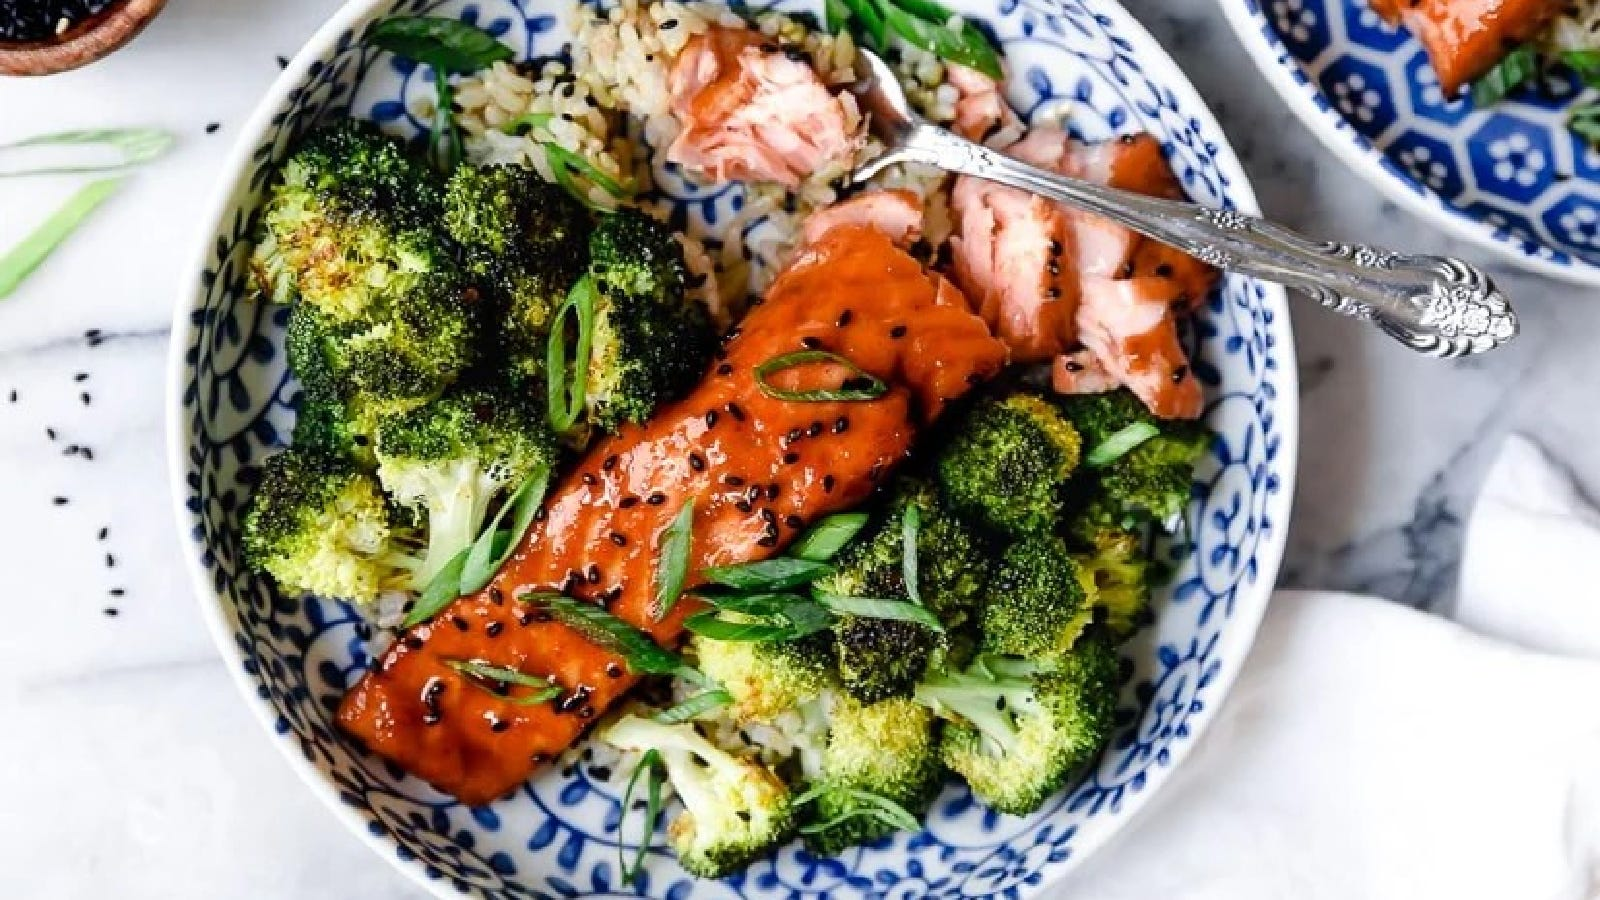 Maple soy air-fried salmon on a plate topped with sesame seeds, with a side of brown rice and broccoli.